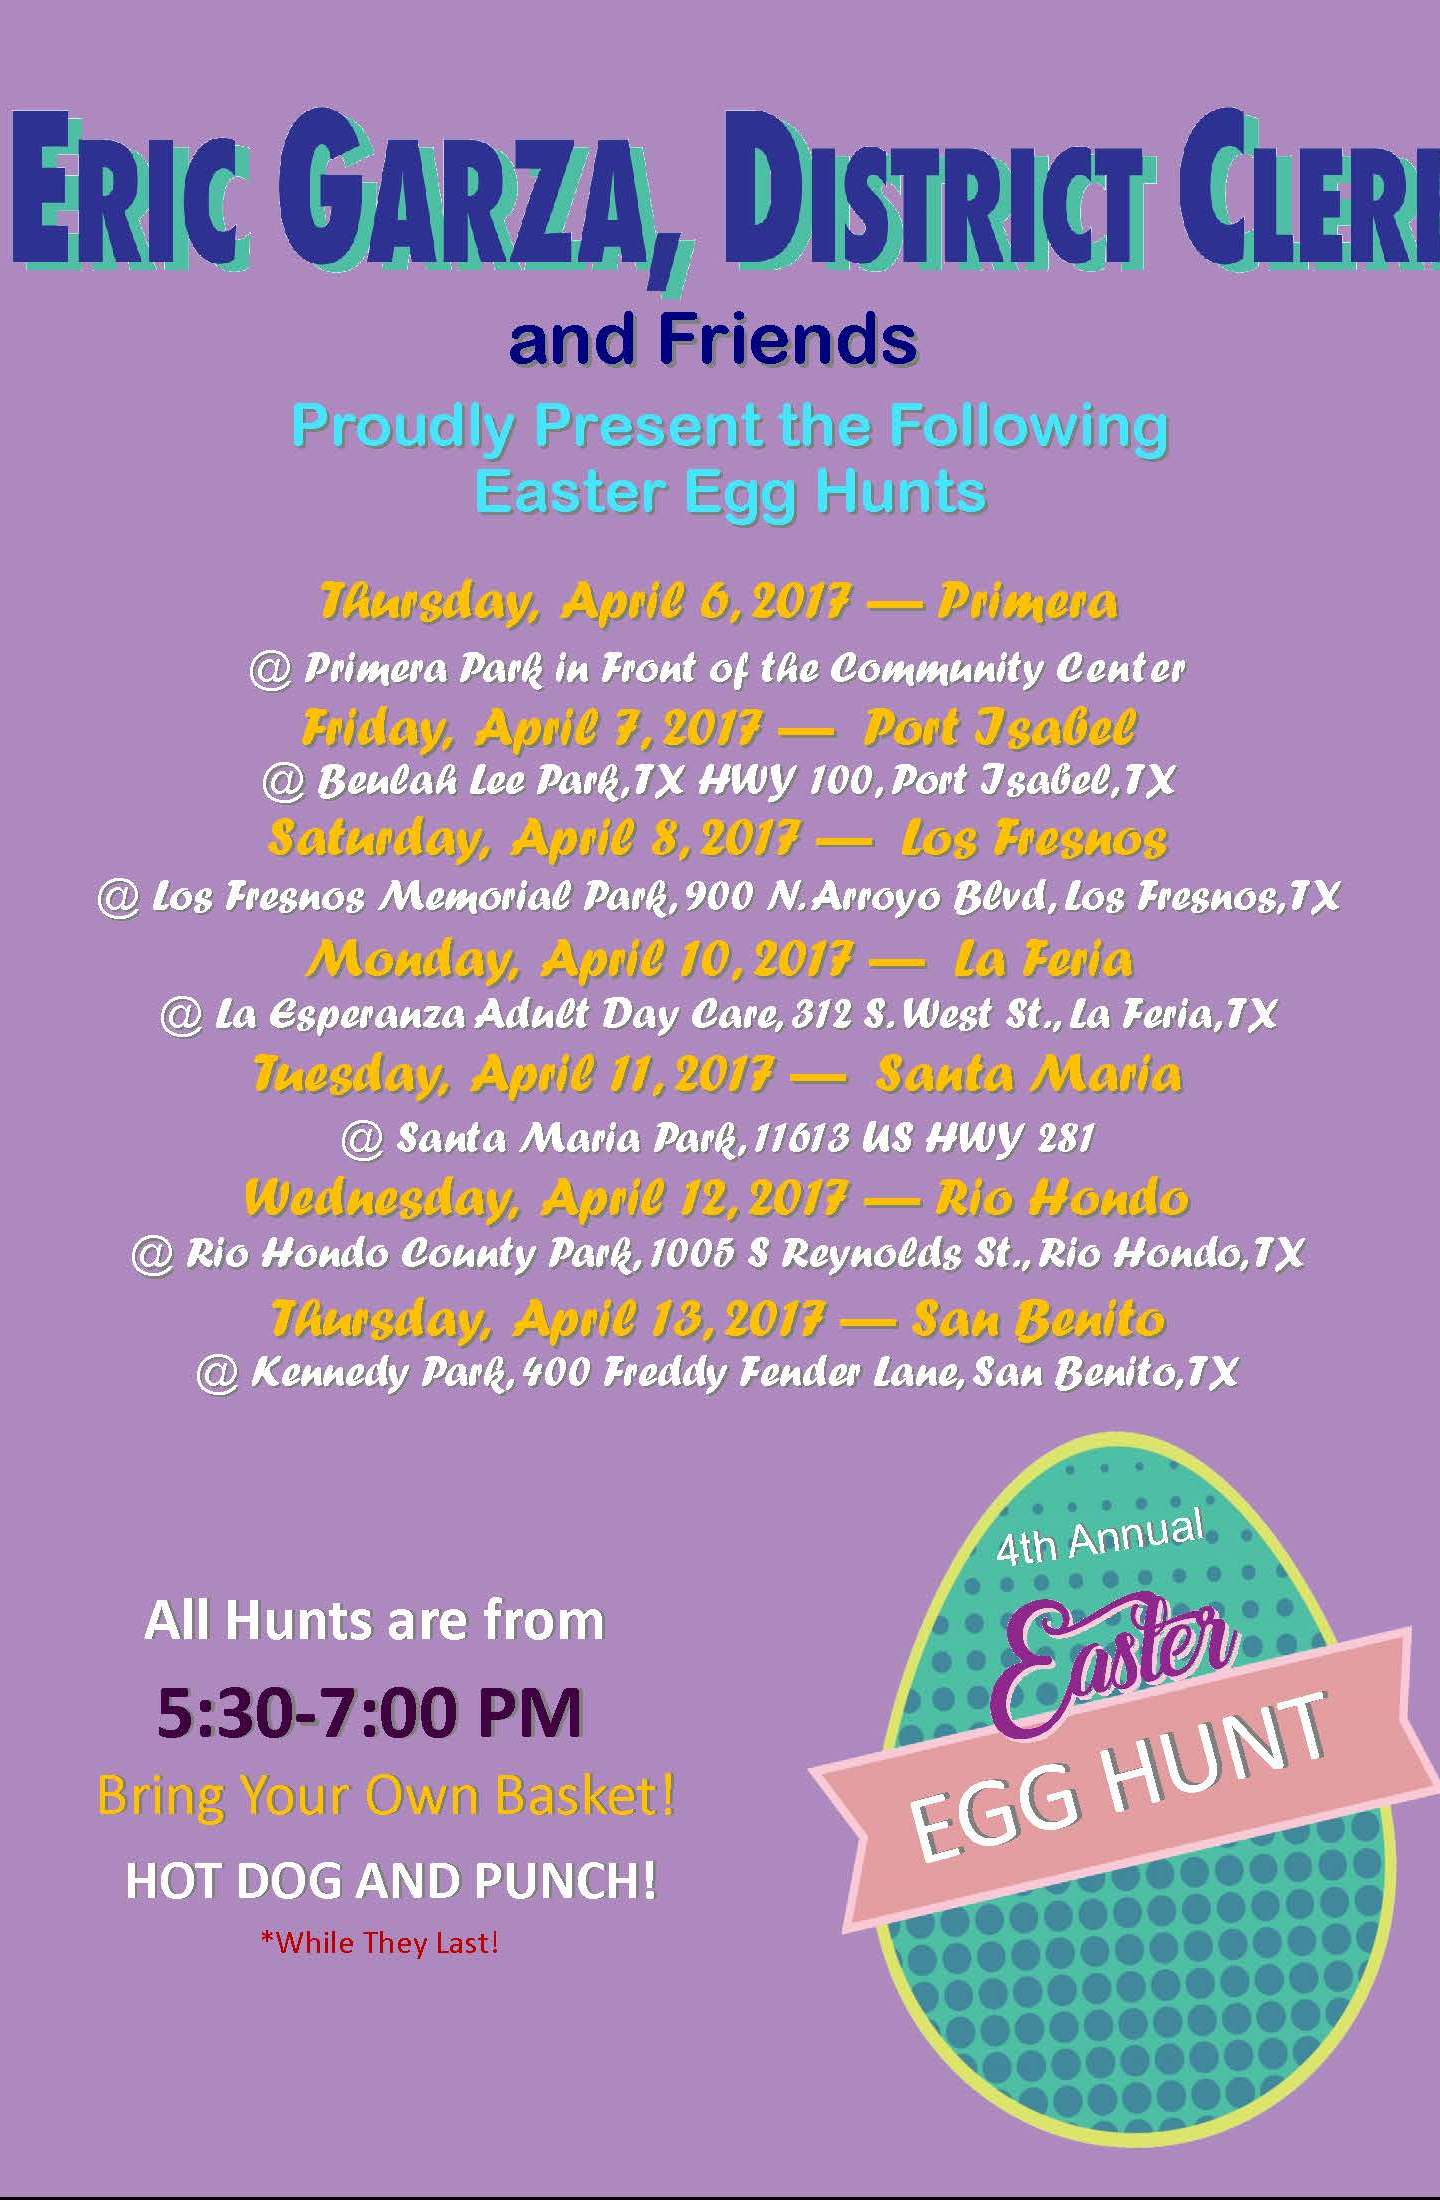 Easter Egg Hunt Flyer_1491495453388.jpg